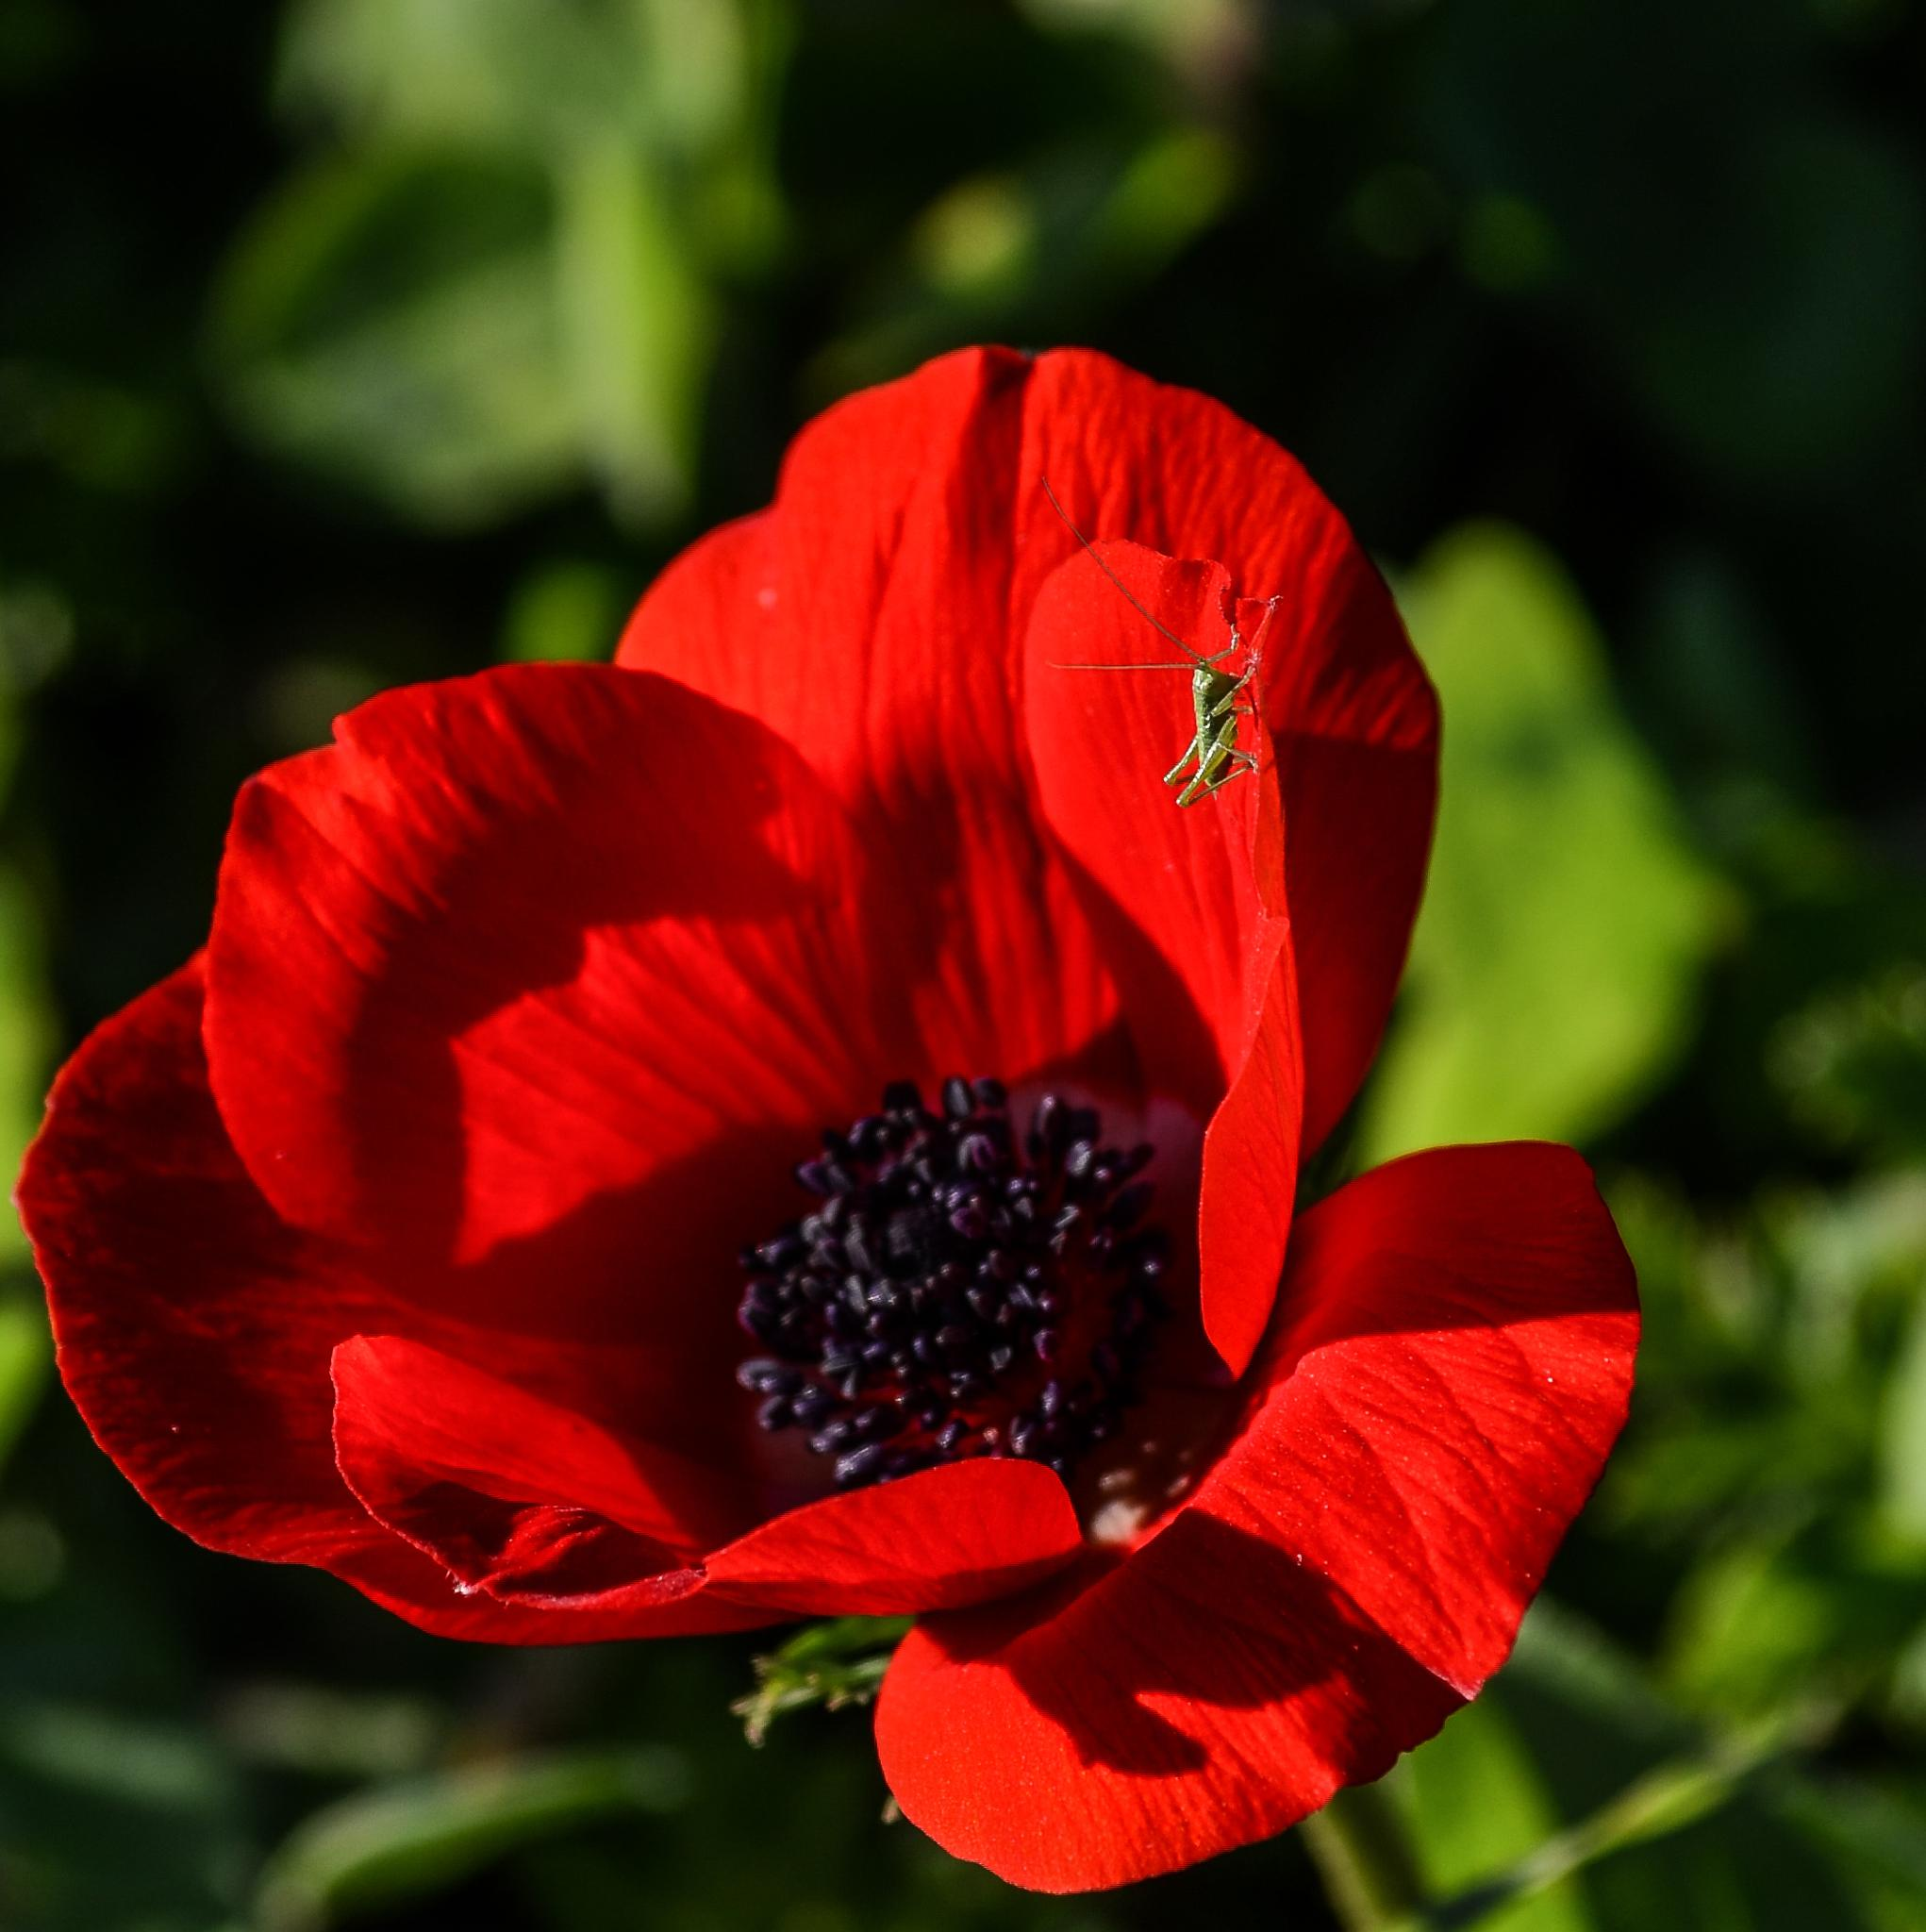 Anemone and Grasshopper by Igor Iris